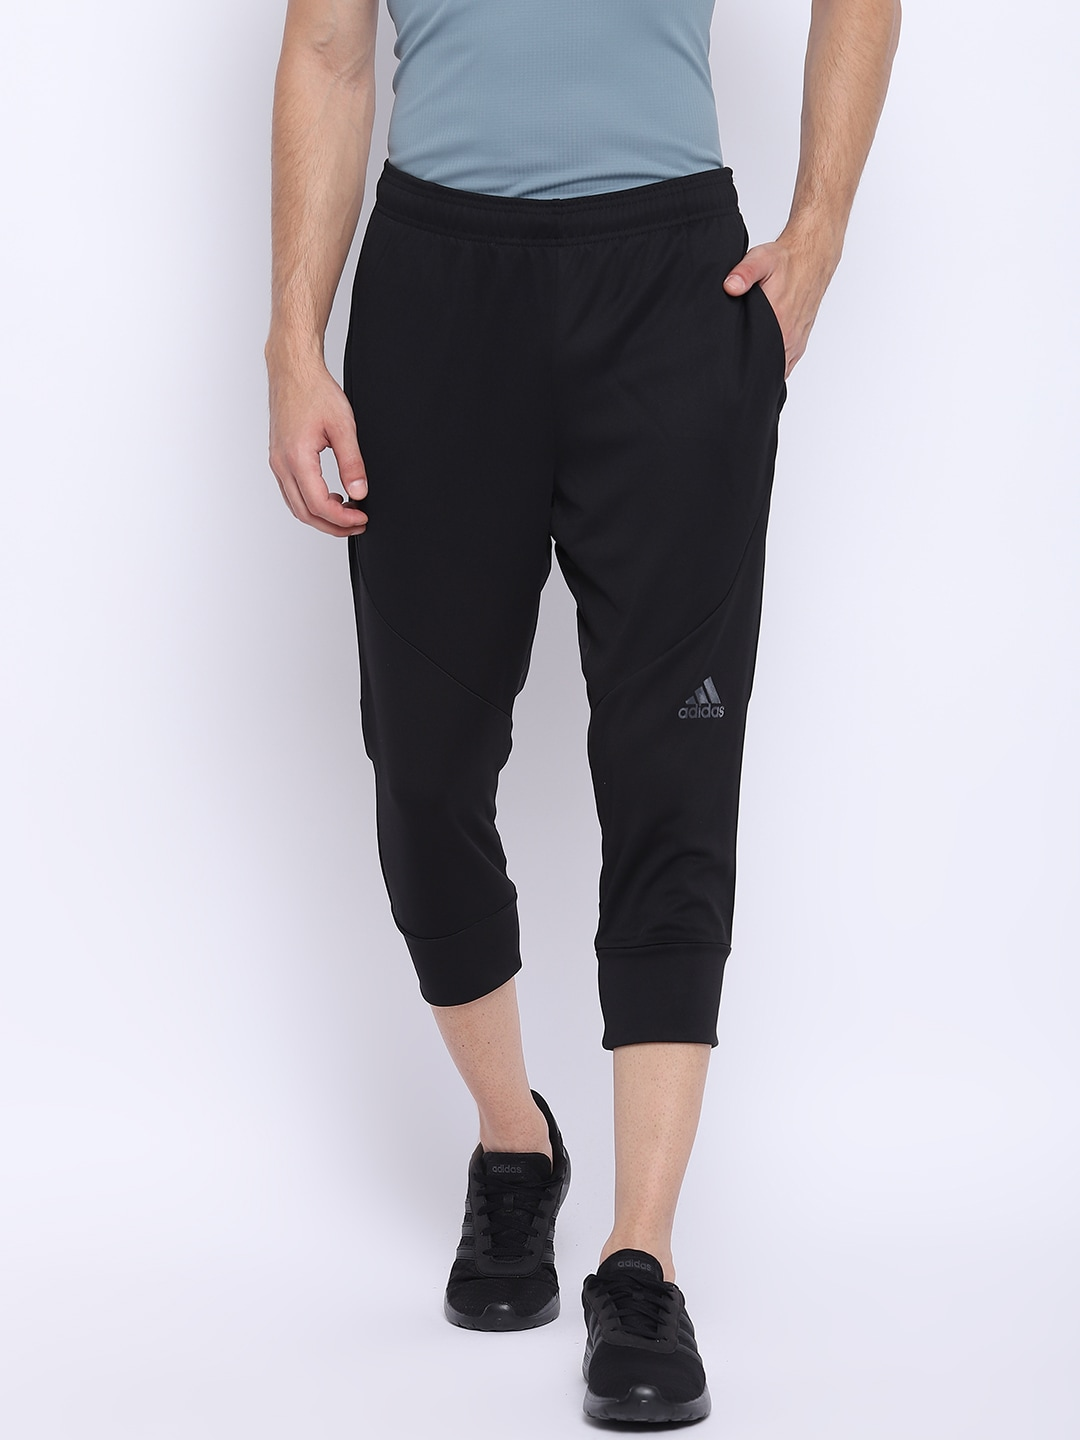 Adidas Track Pants Pants Caps Hat Windbreaker 3 Shorts - Buy Adidas Track Pants  Pants Caps Hat Windbreaker 3 Shorts online in India 37854d2c002